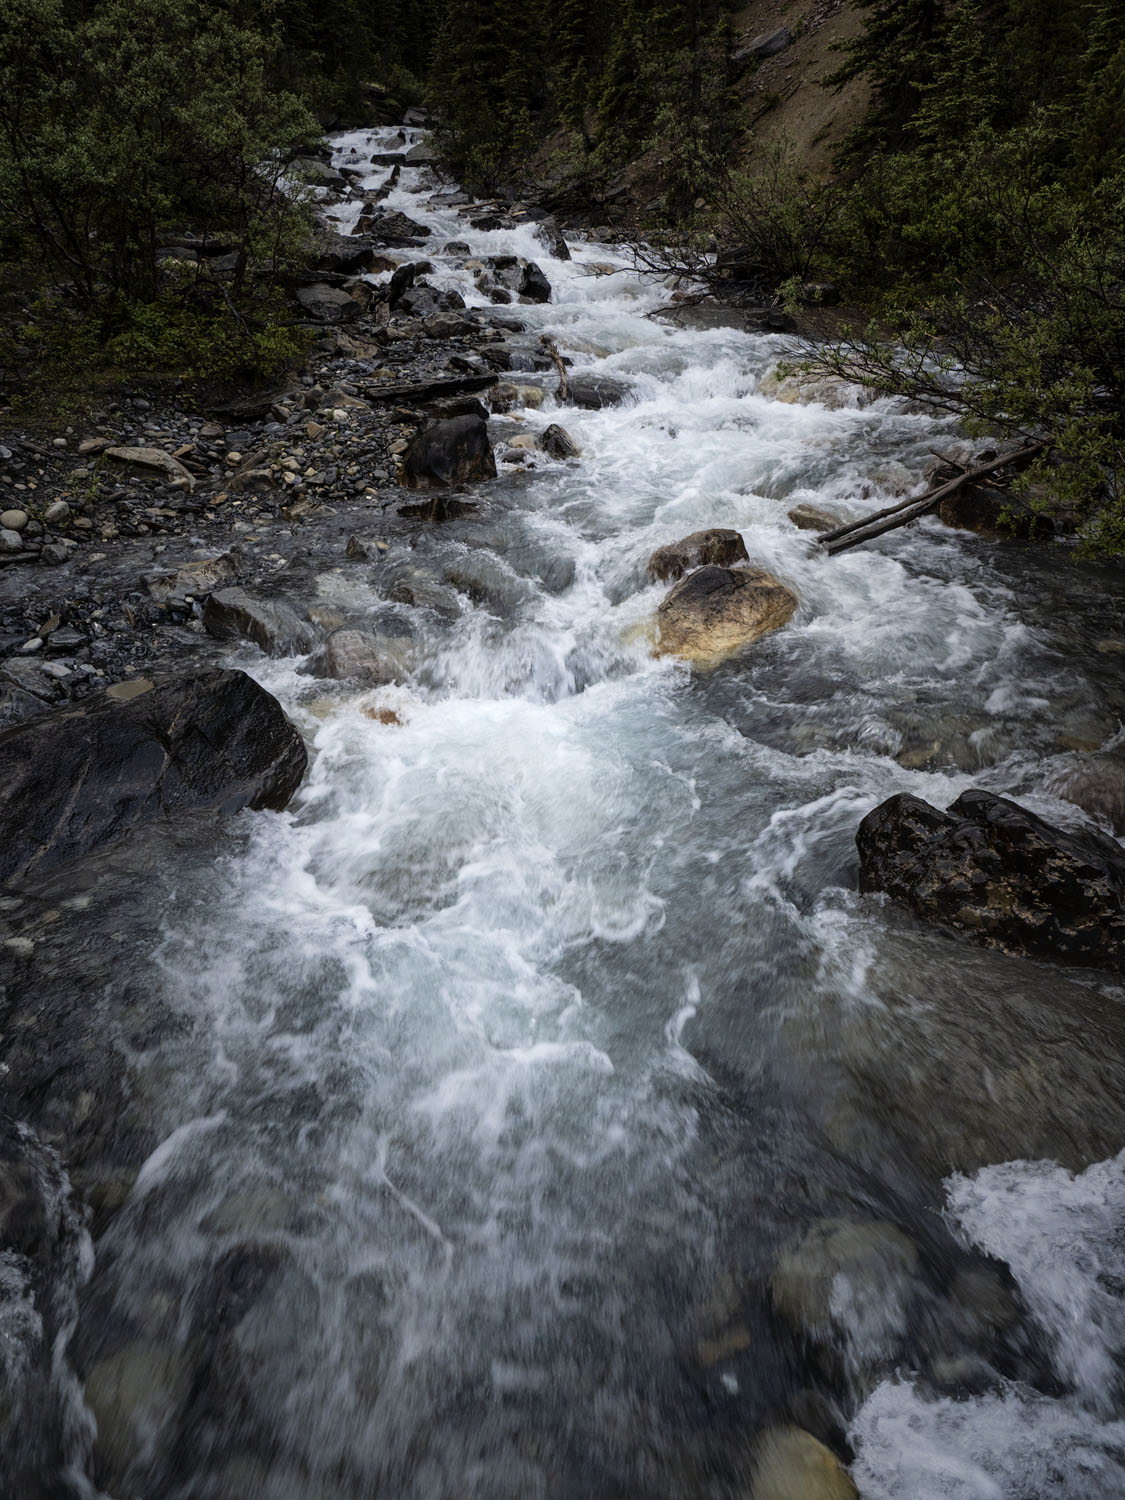 Image: Capturing a flowing stream during the day with normal settings